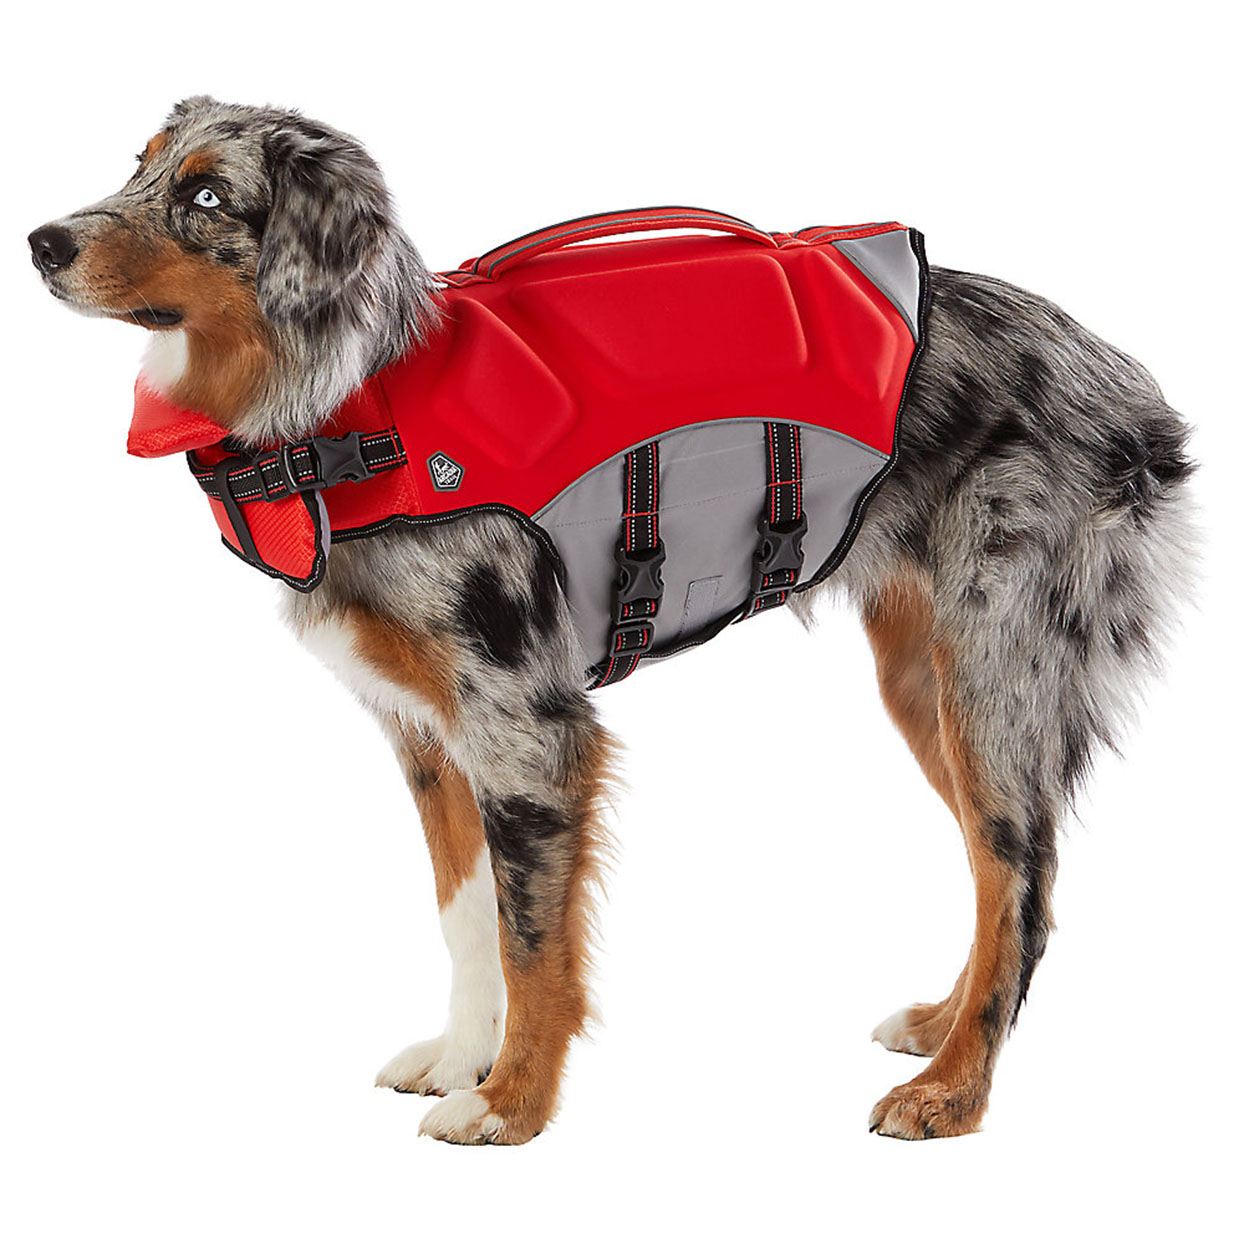 Arcadia trail dog life jacket